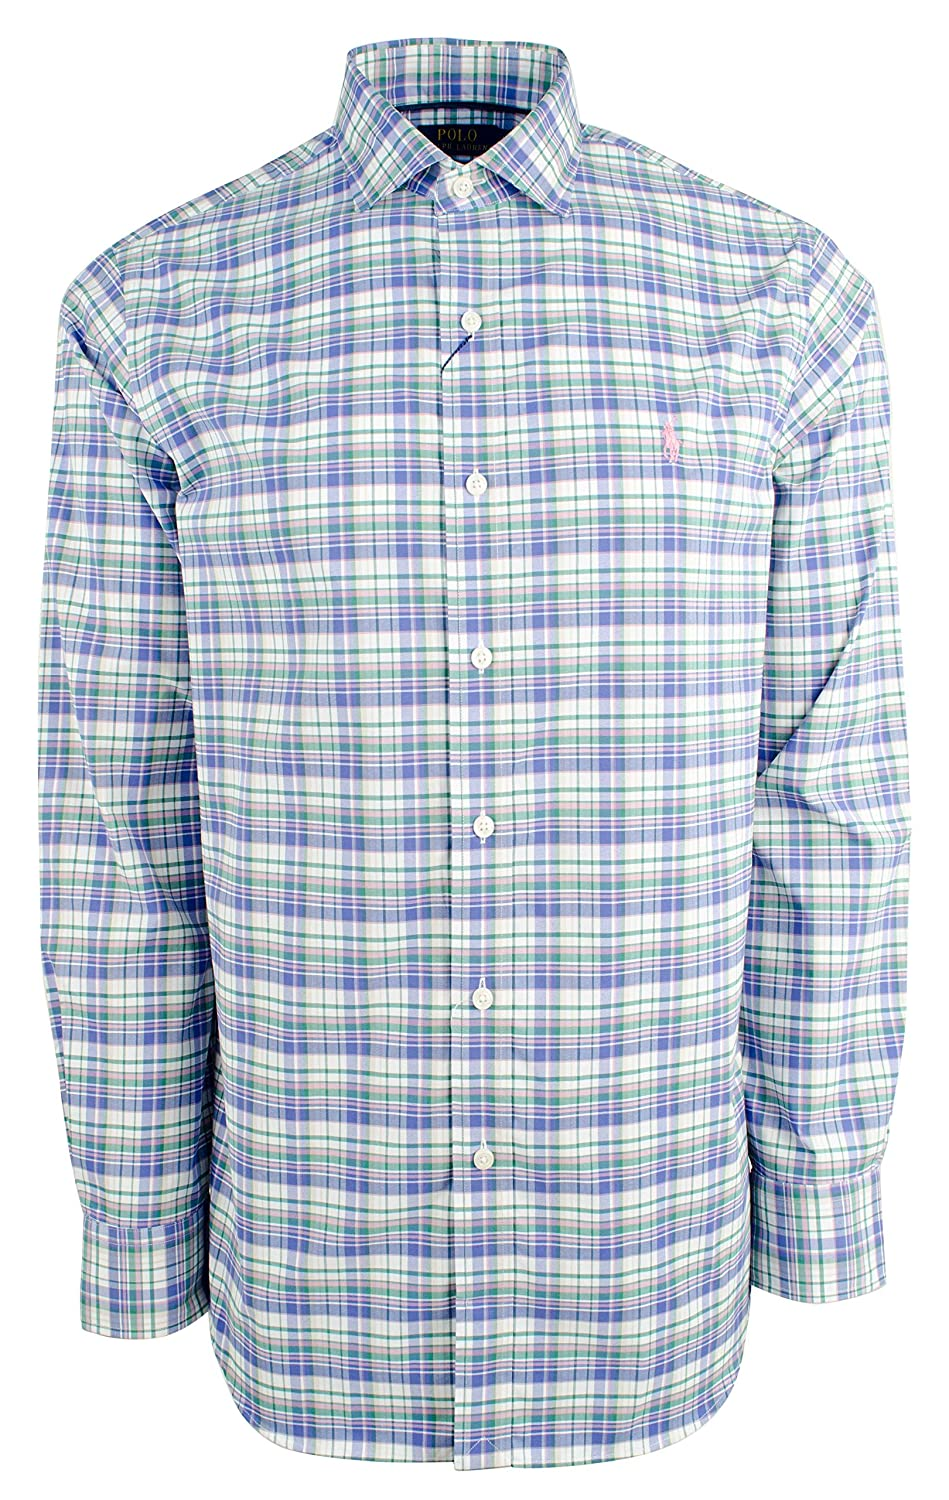 a488f9d8e Polo Ralph Lauren Men s Plaid Stretch Performance Twill Long Sleeve Shirt  at Amazon Men s Clothing store